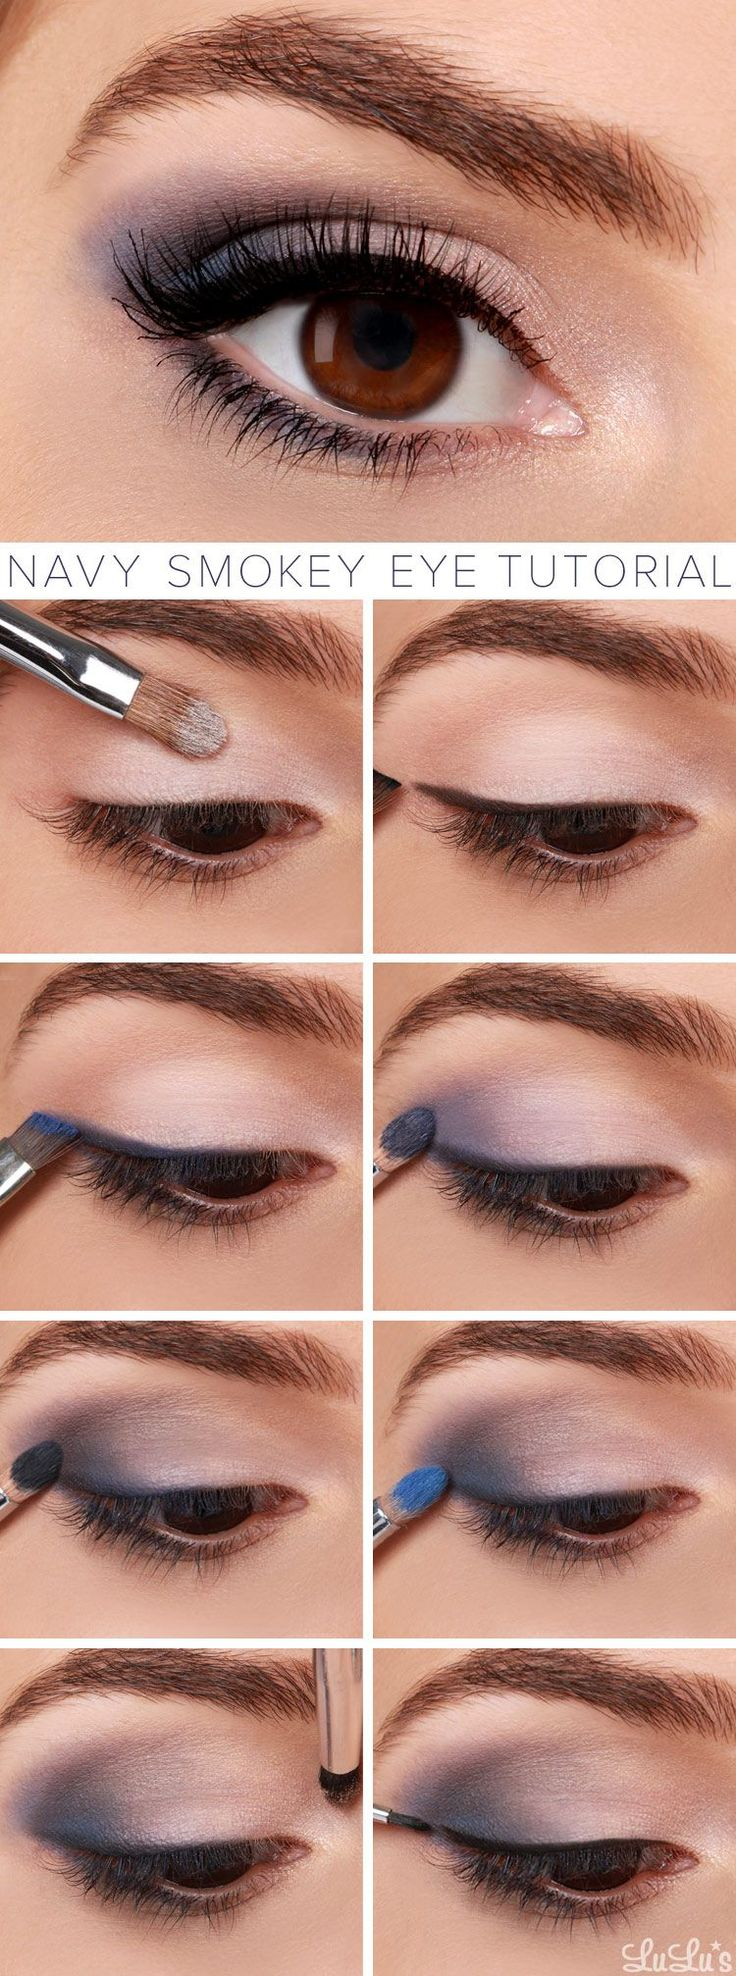 LuLu*s How-To: Navy Smokey Eye Makeup Tutorial at LuLus.com!